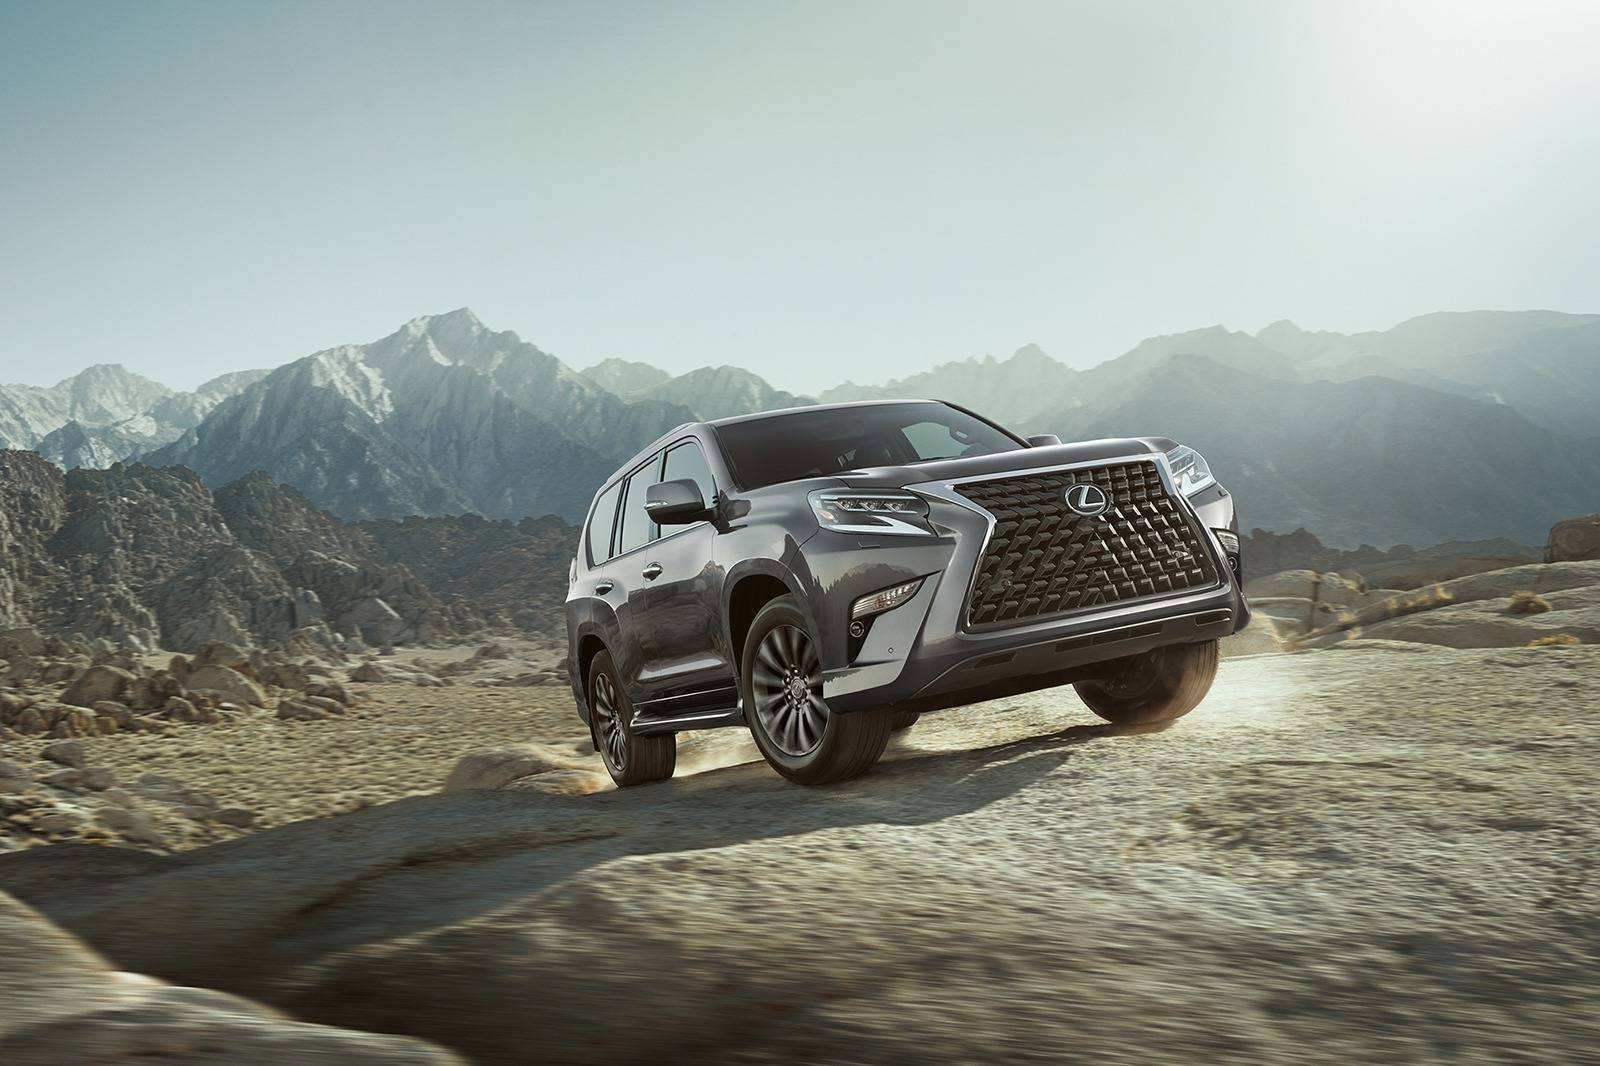 33 New When Does Lexus Gx 2020 Come Out Speed Test